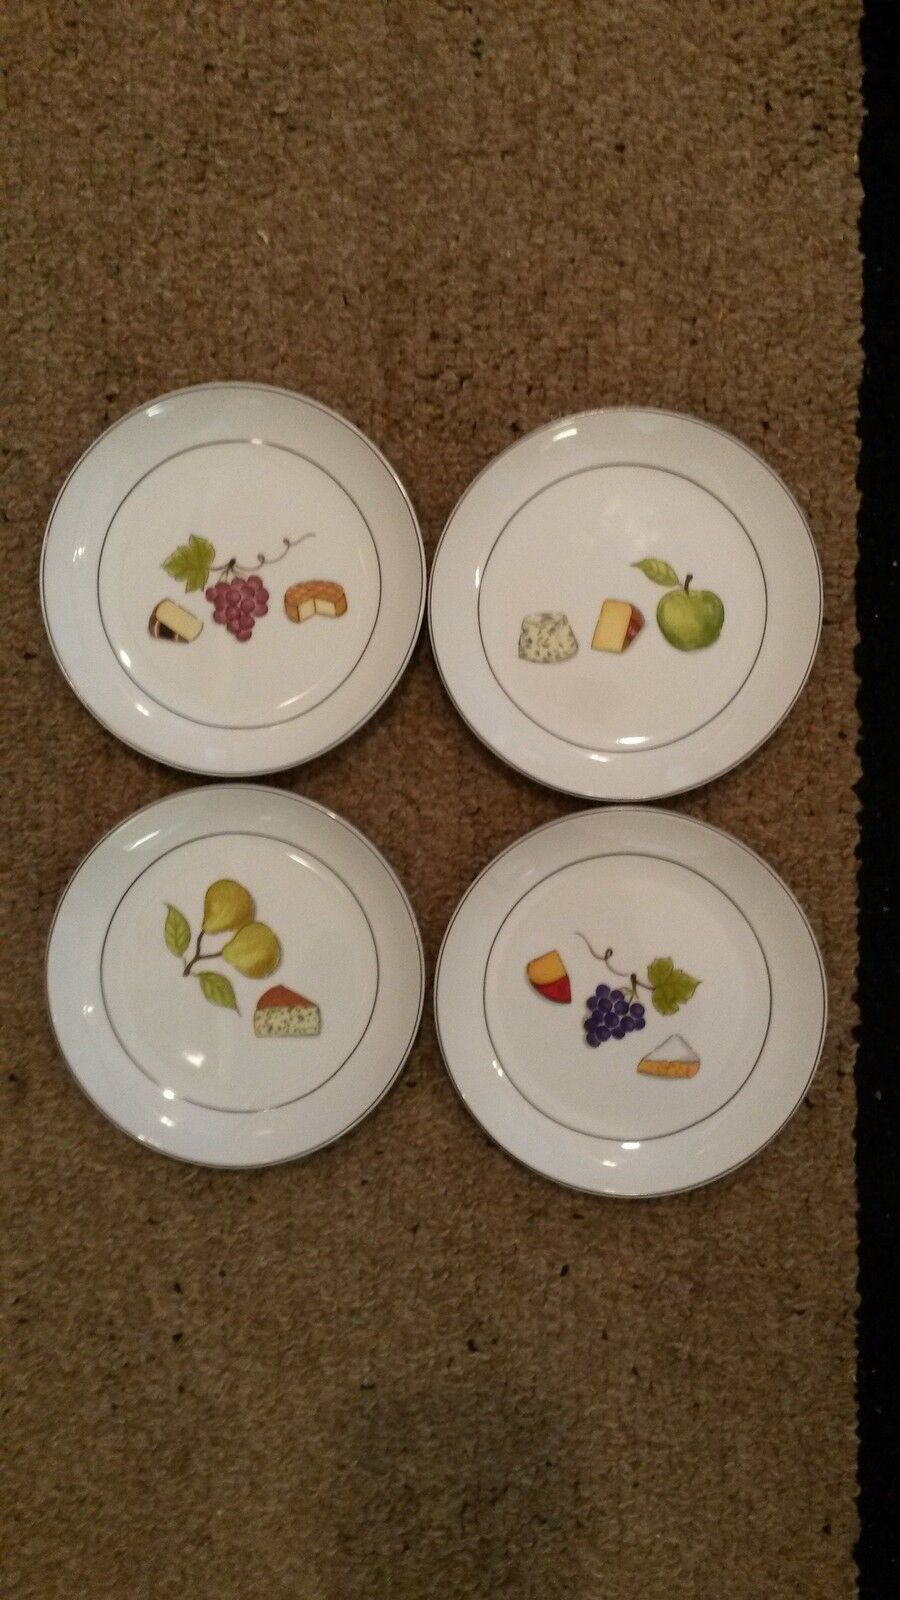 4 CRATE & BARREL CHEESE FRUIT APPETIZER PLATES 6.5  UNUSED